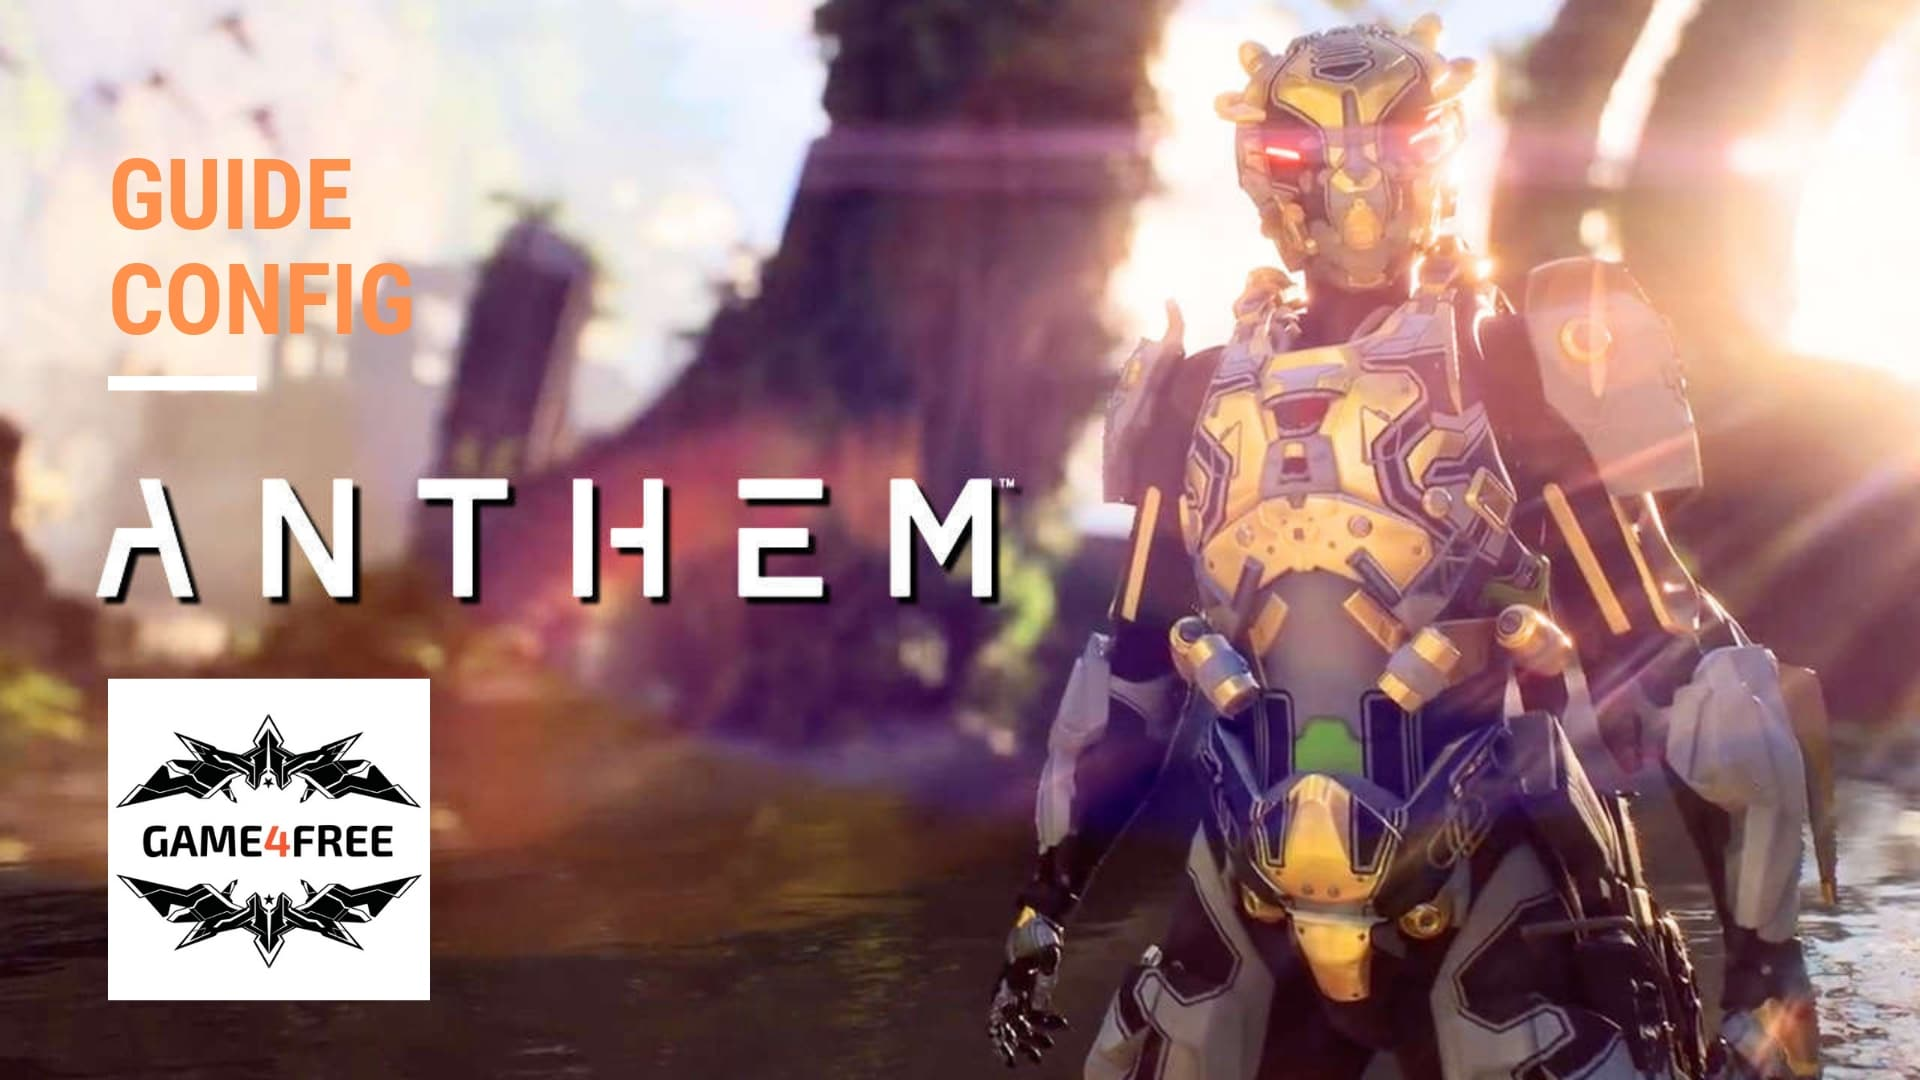 Configuration de PC Gamer pour Anthem